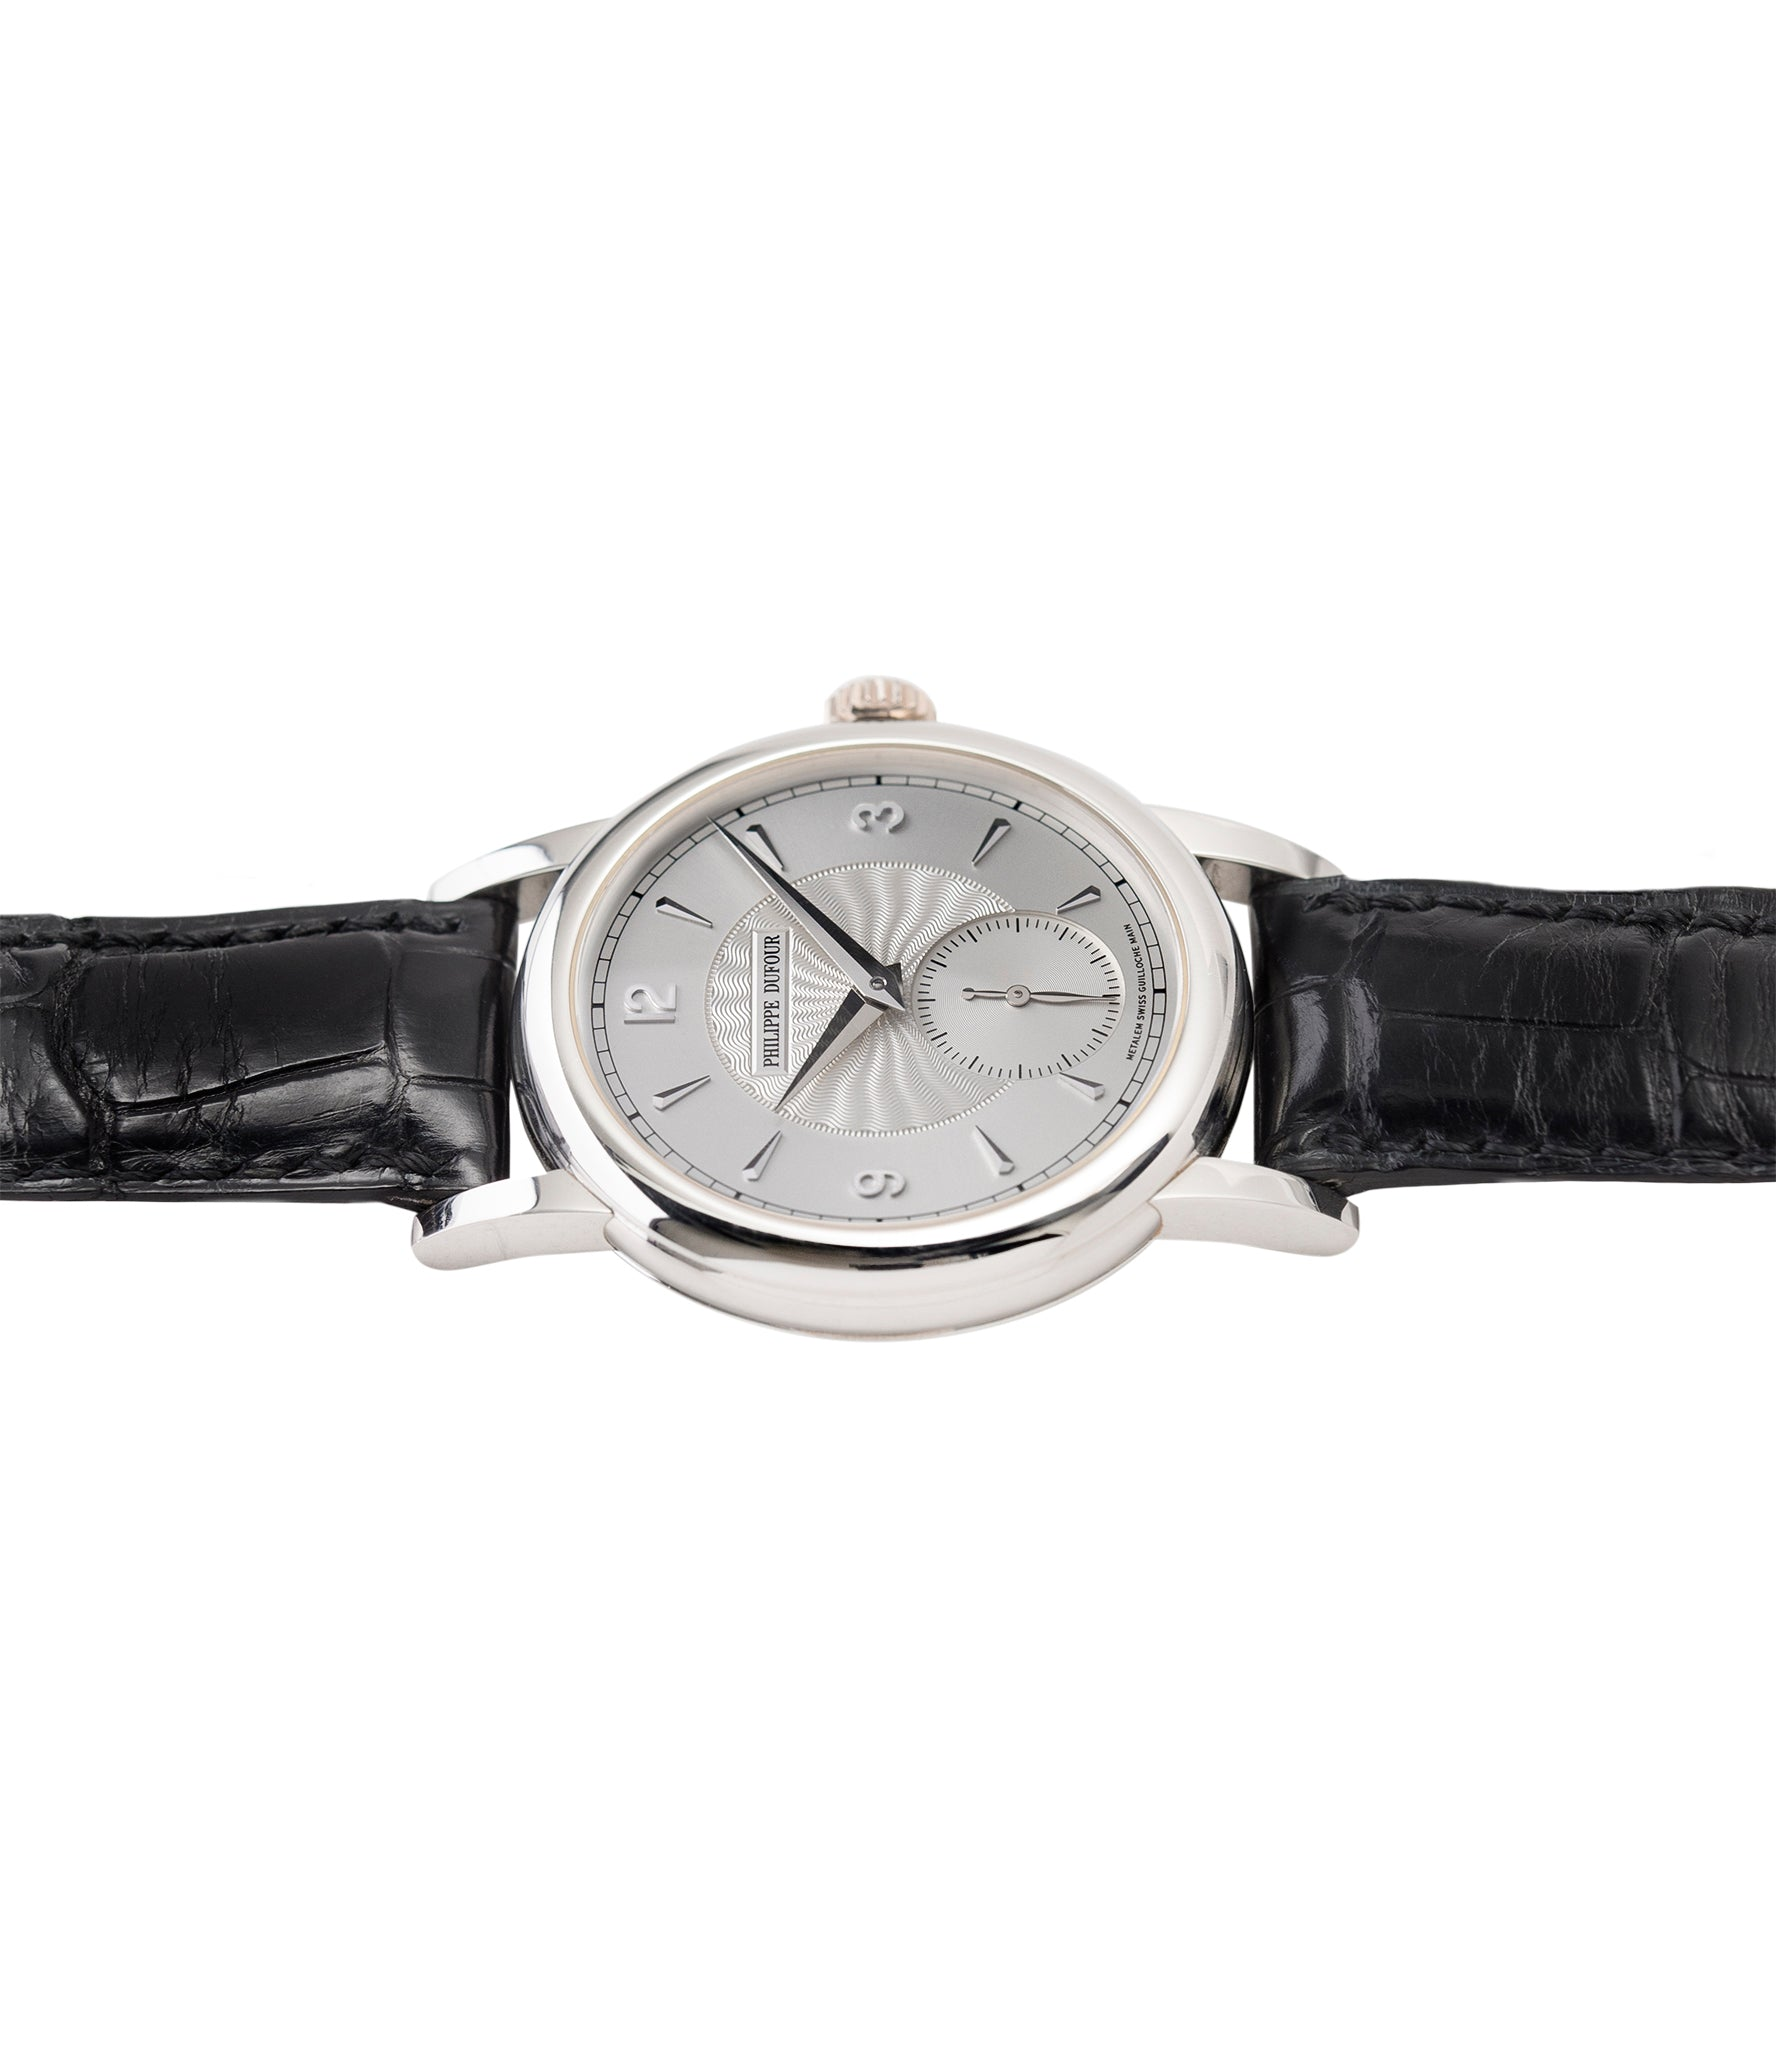 buy Simplicity watch by Philippe Dufour platinum time-only dress watch for sale online at A Collected Man London UK approved specialist of preowned independent watchmakers